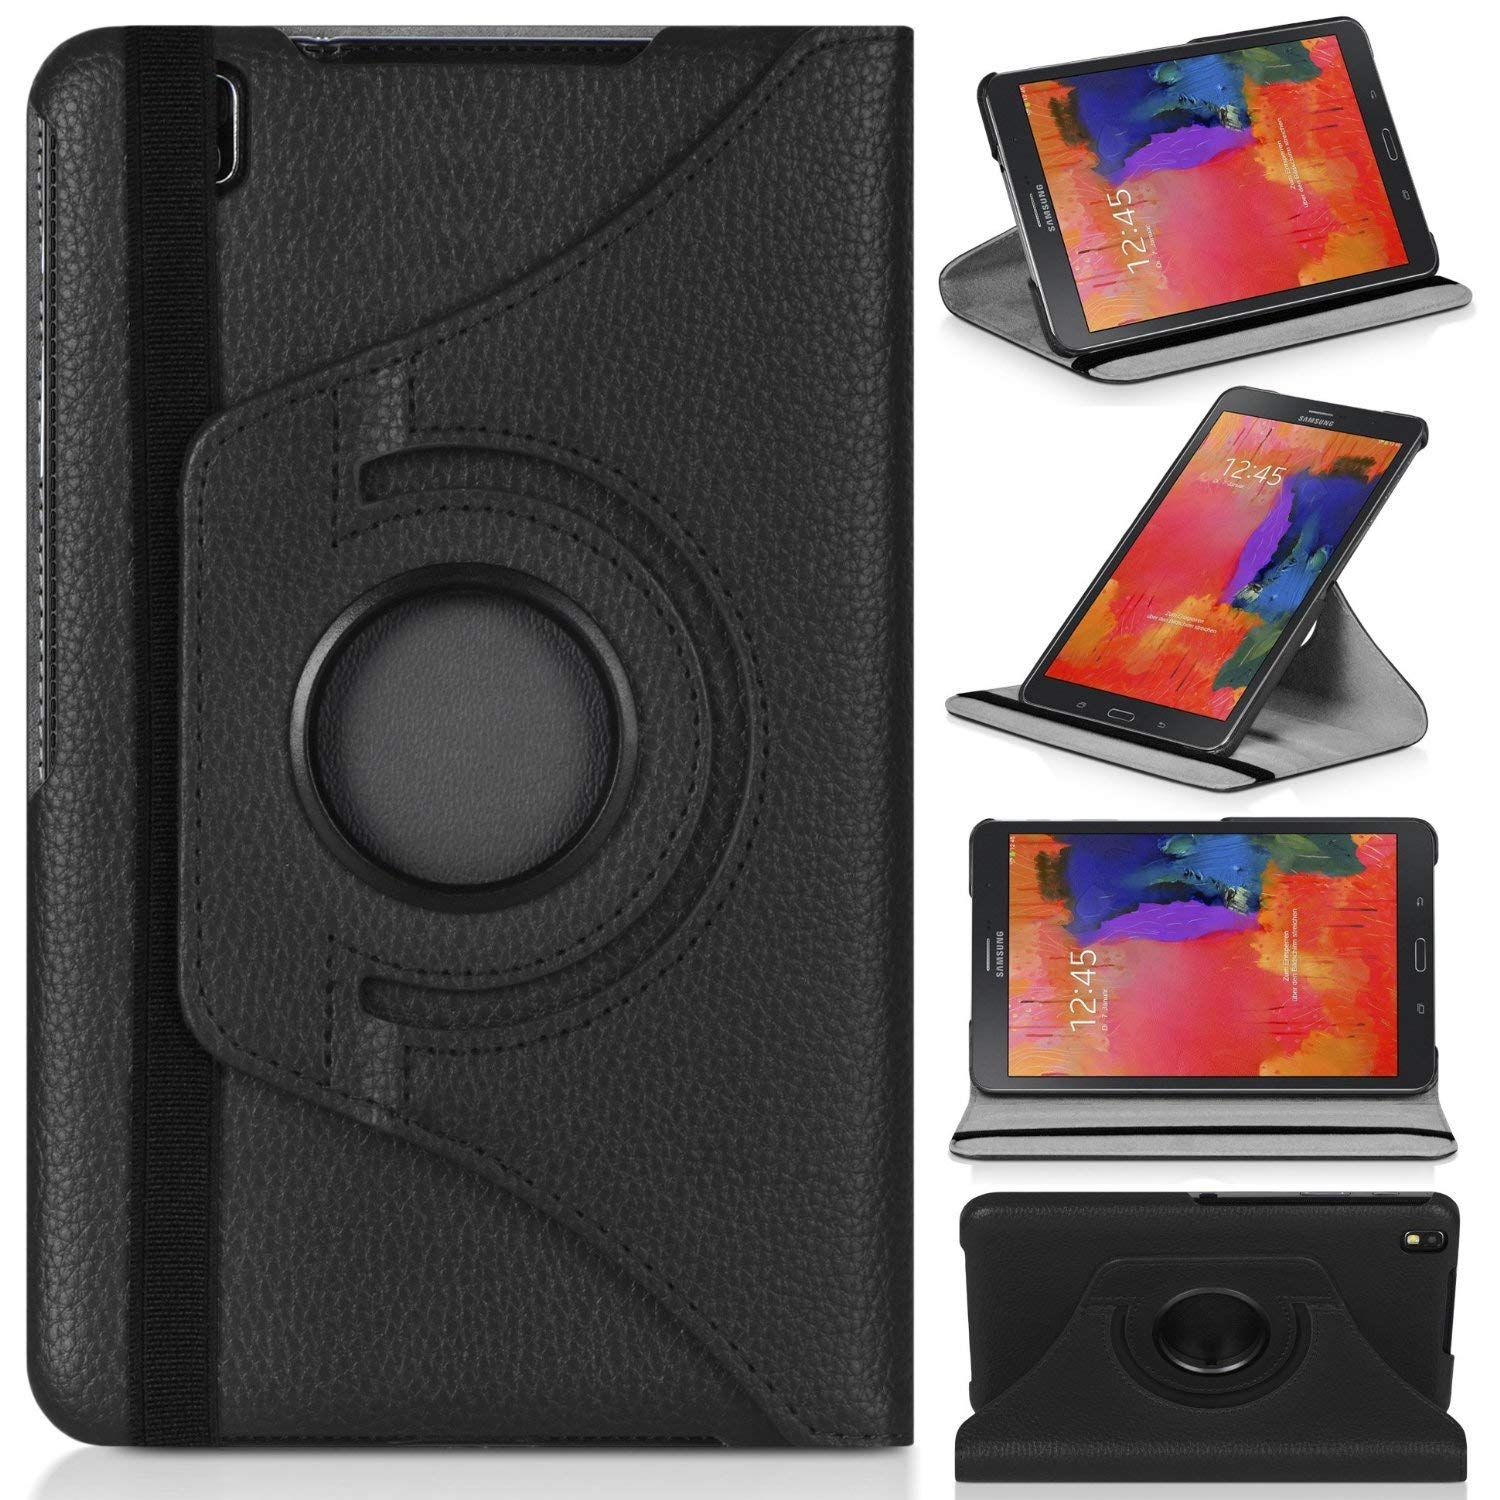 360 Rotating Flip Case Stand Leather Cover For Samsung Galaxy Tab Pro 8.4 T320 T325 Tablet PC Cases Covers for Samung T320 T325 image